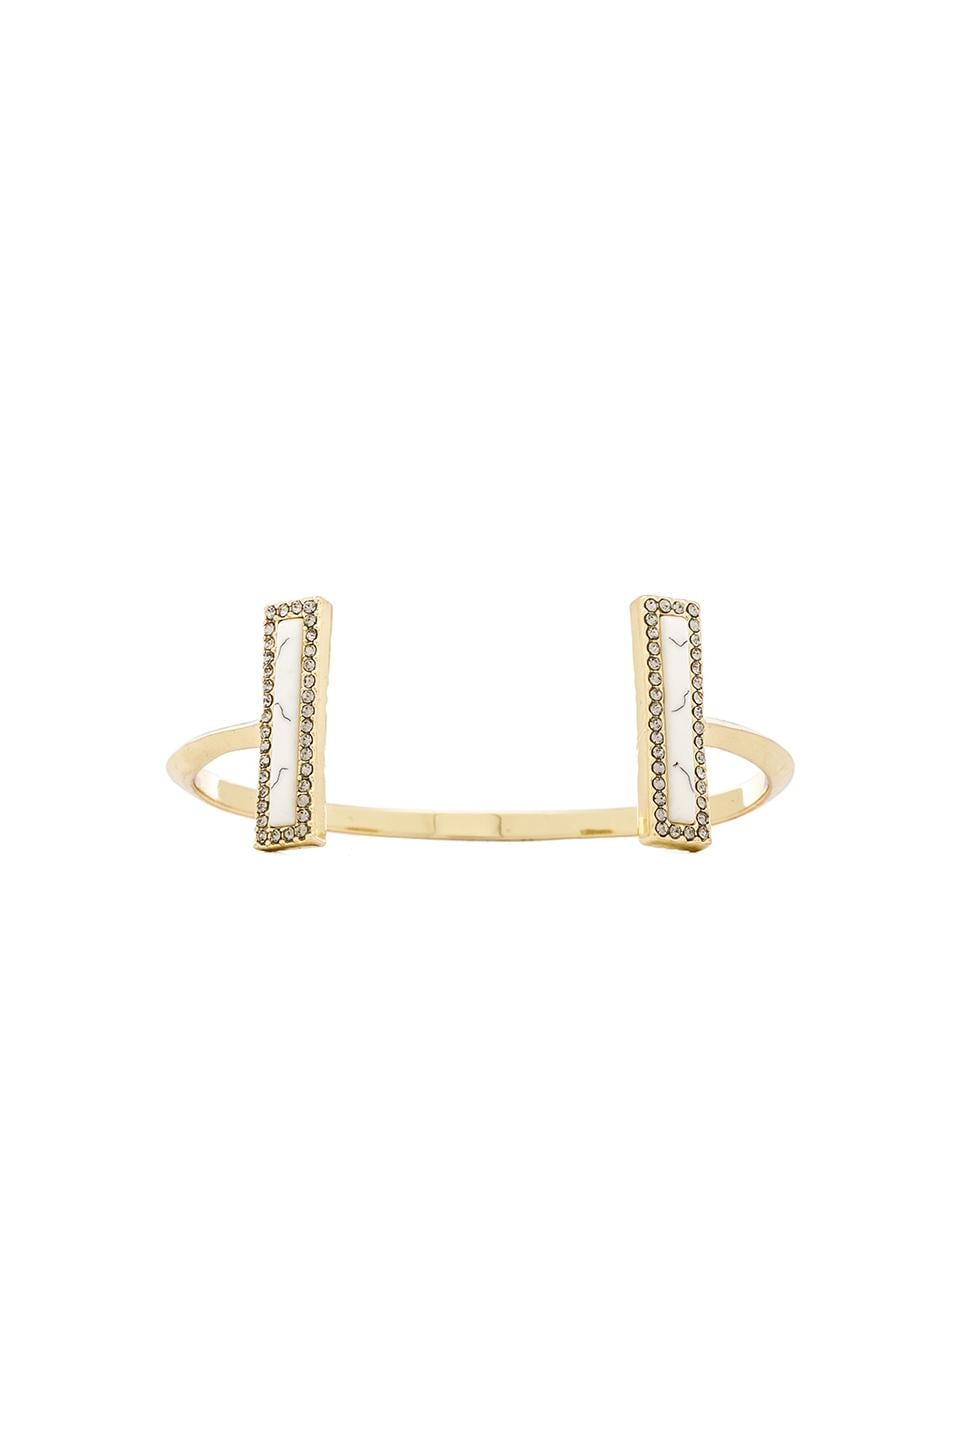 House of Harlow 1960 House of Harlow Illuminating Rectangle Cuff in Howlite